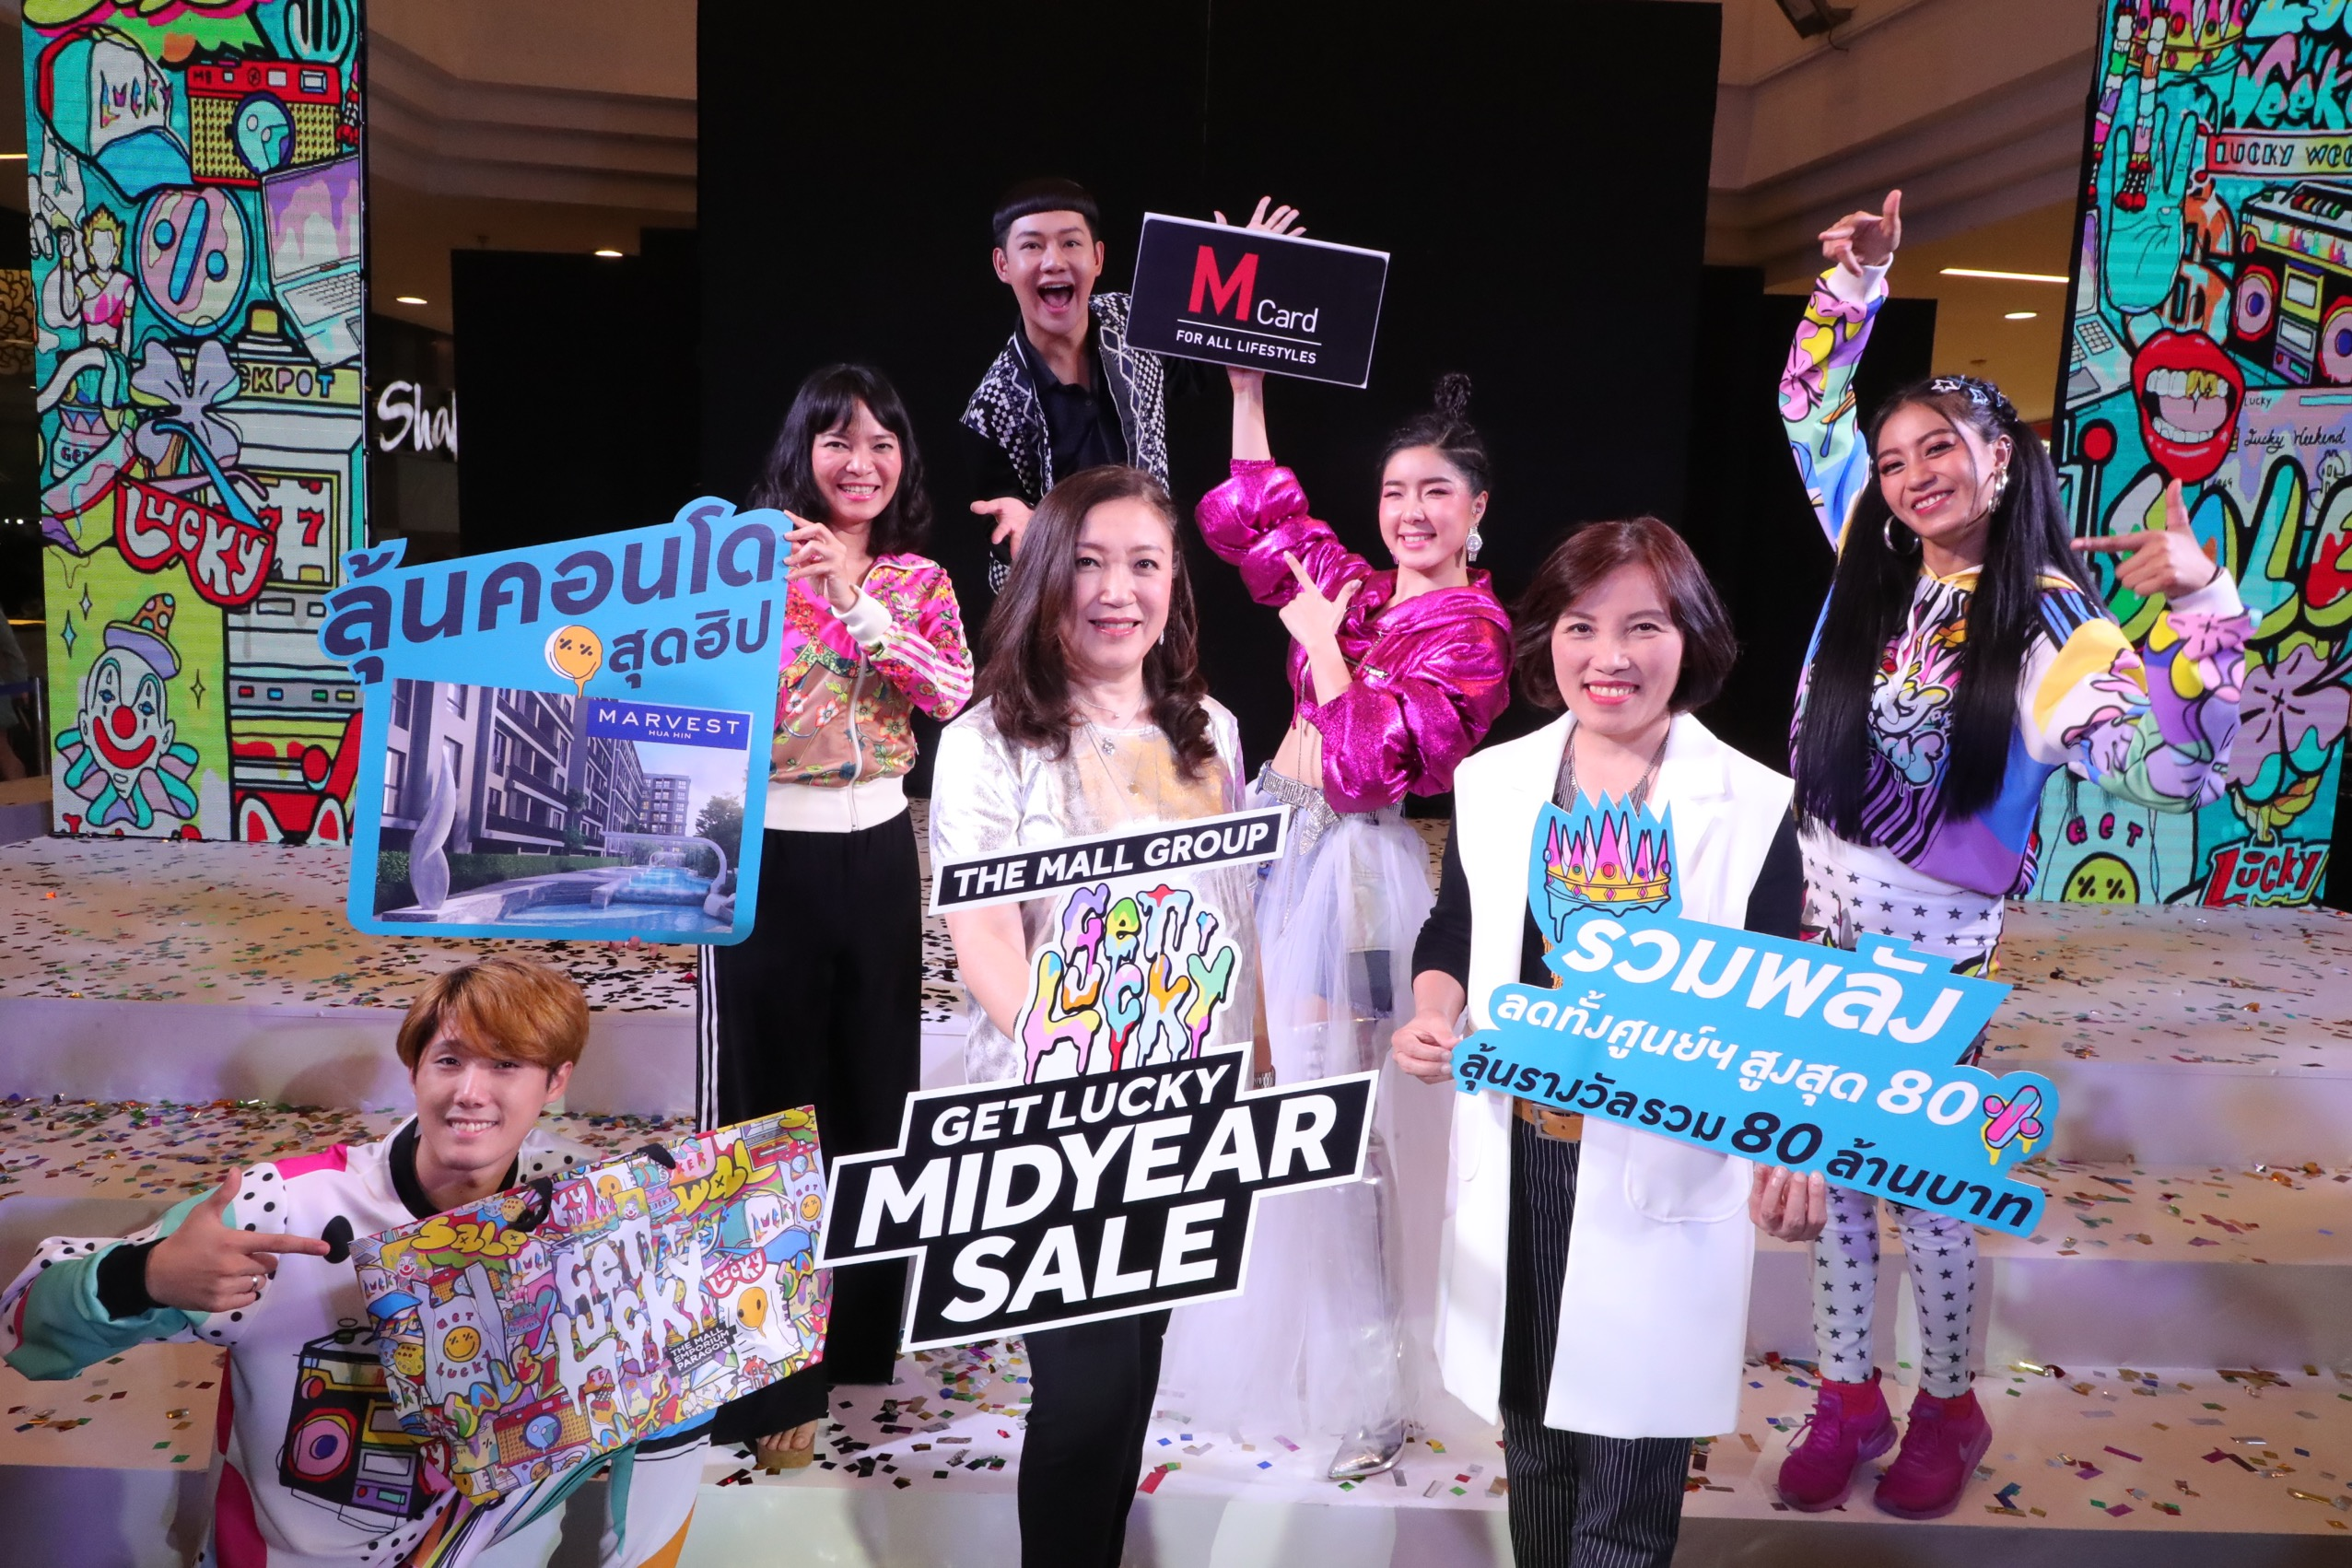 แคมเปญ The Mall Group Get Lucky Midyear Sale